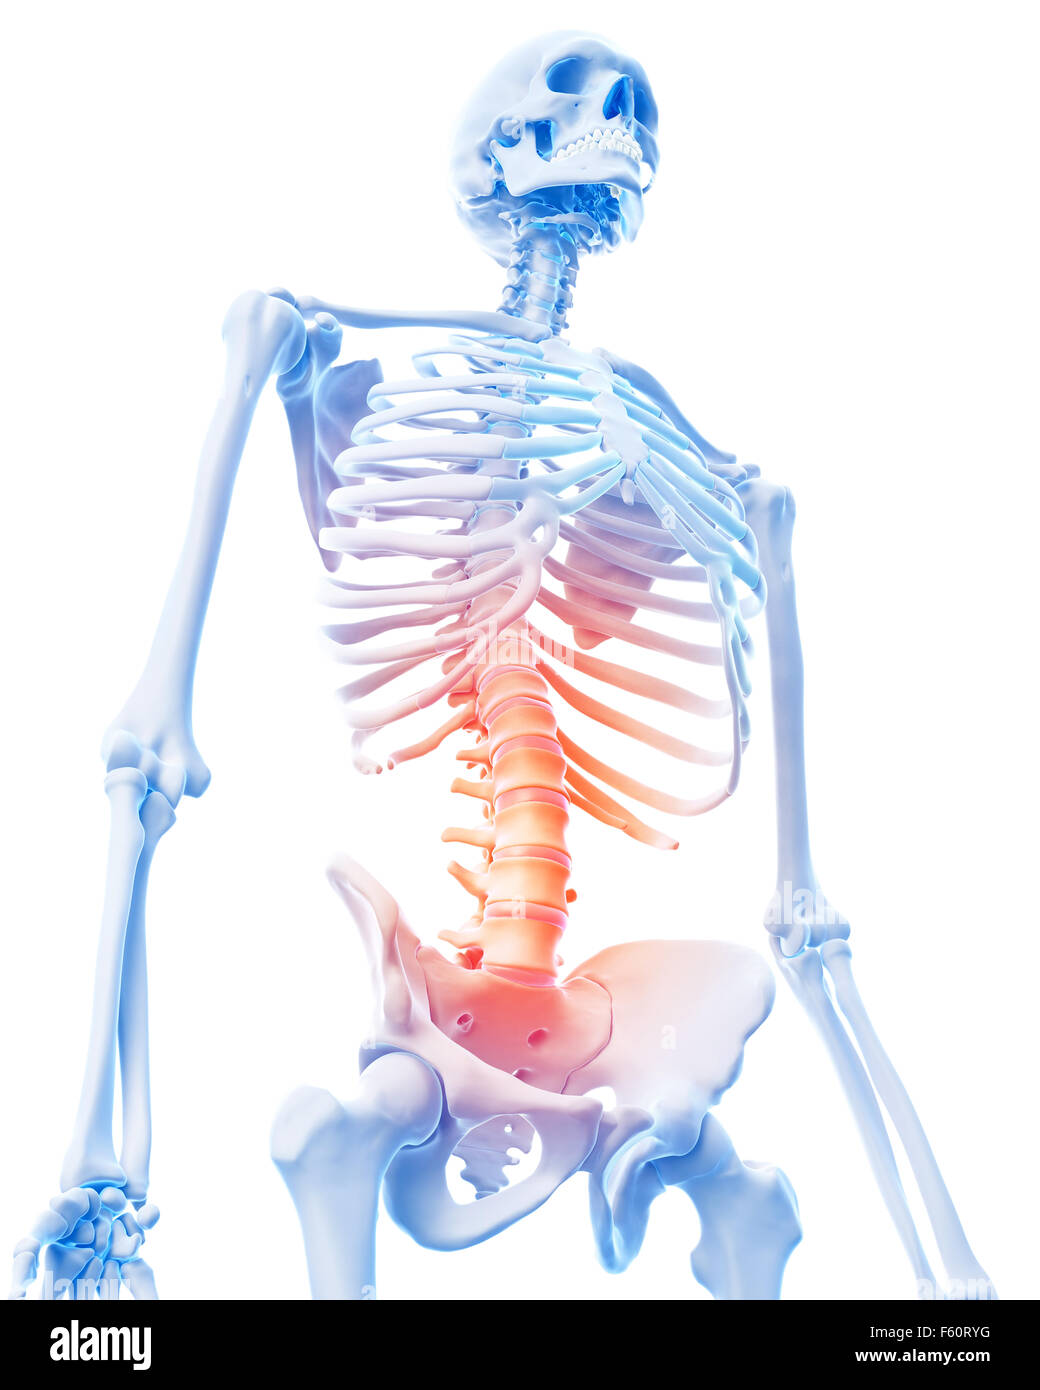 medical 3d illustration of a painful lumbar spine - Stock Image